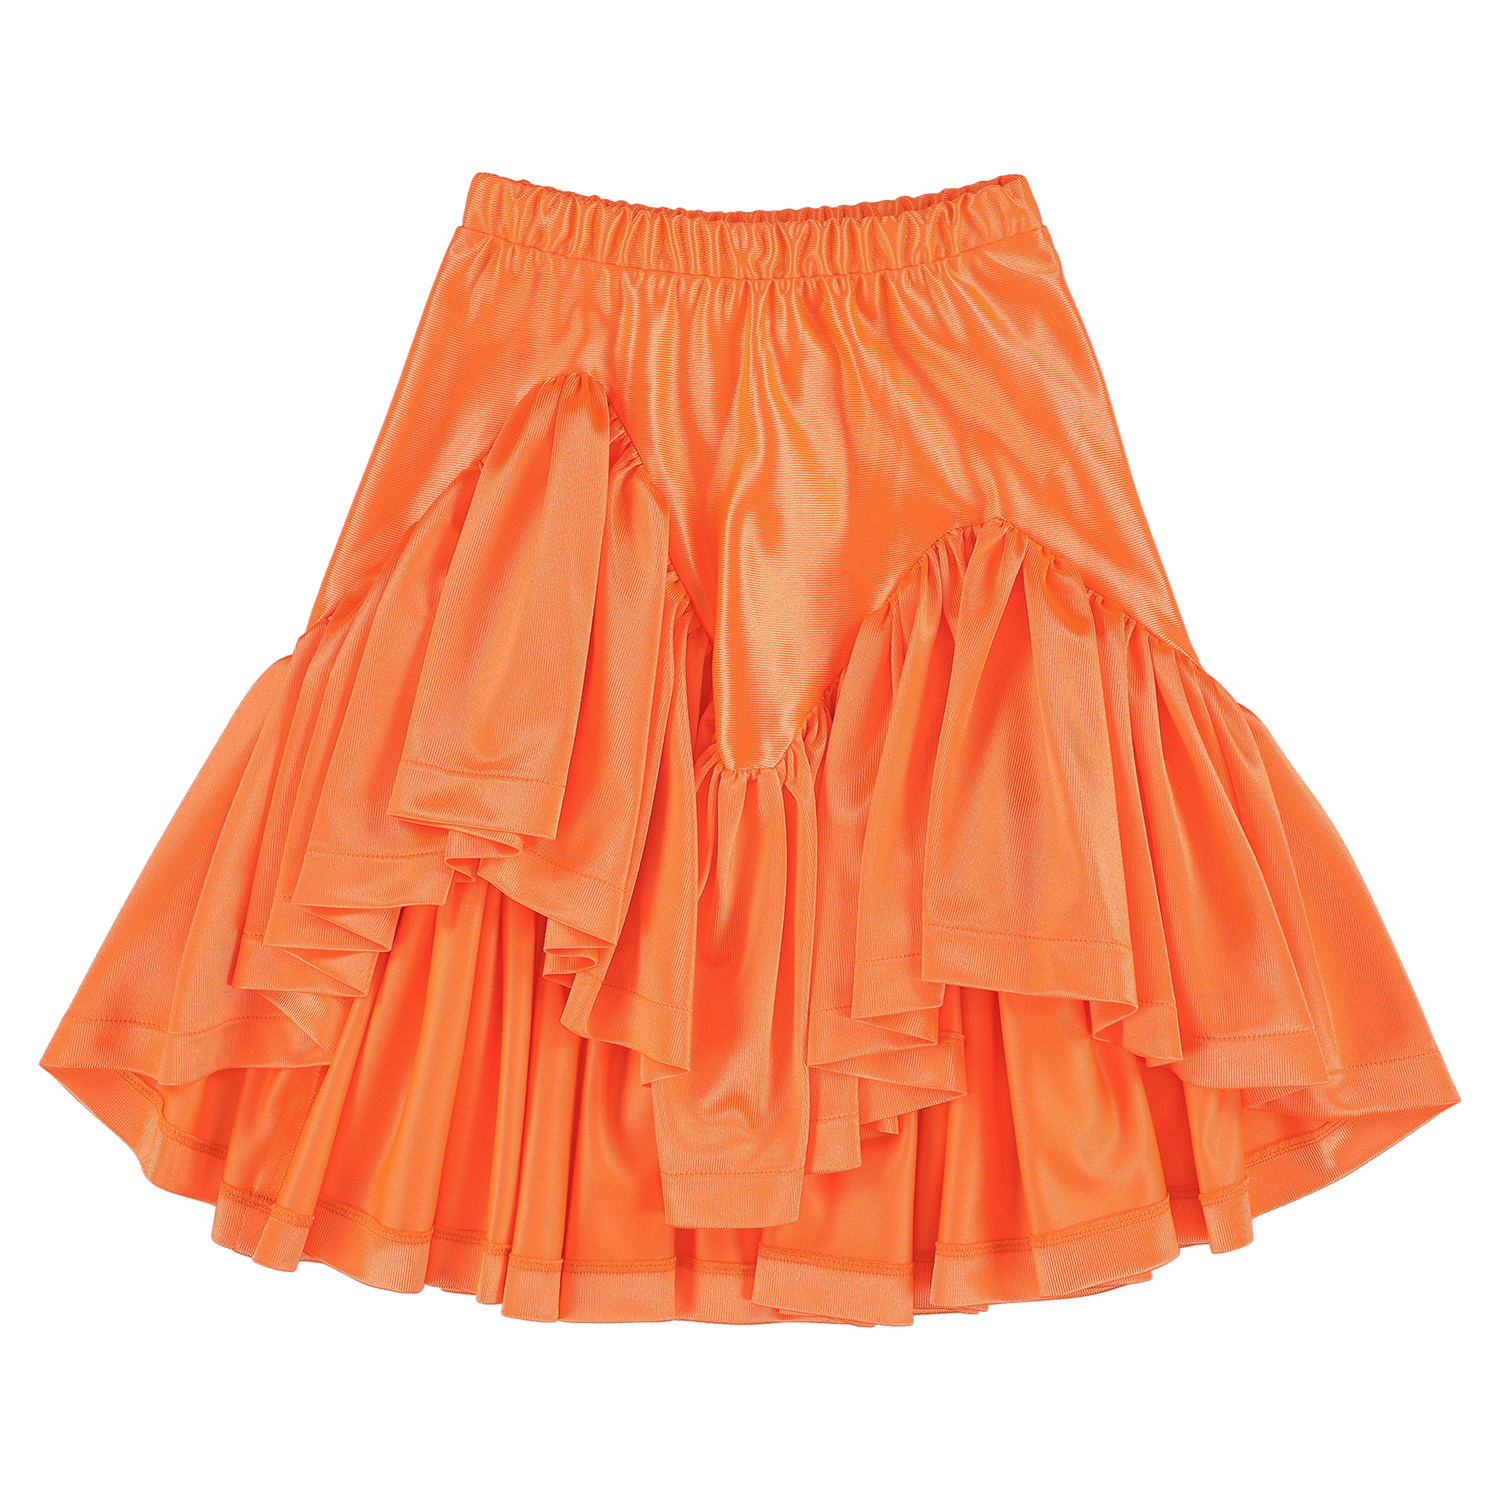 Glimmer Fluo Orange Shiny Ruffled Skirt